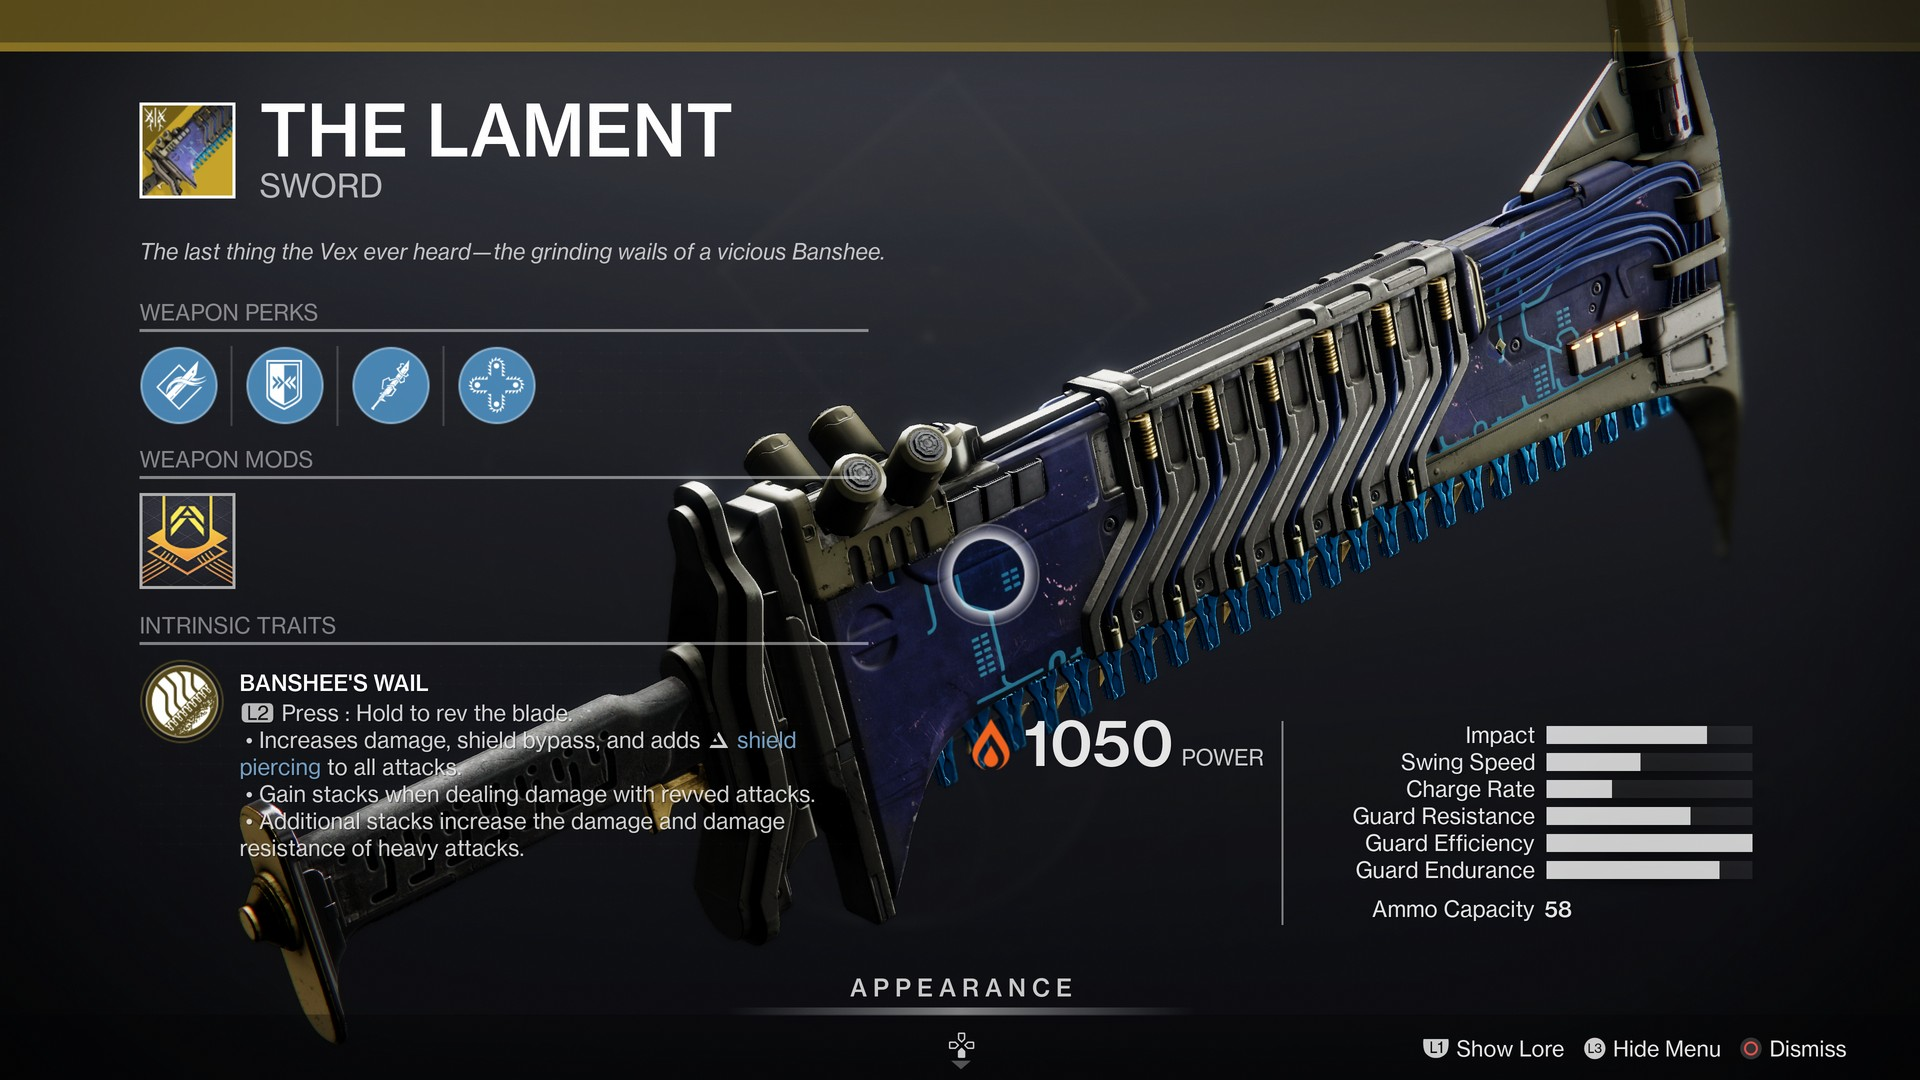 Is The Lament The Best Exotic Sword In Destiny 2?